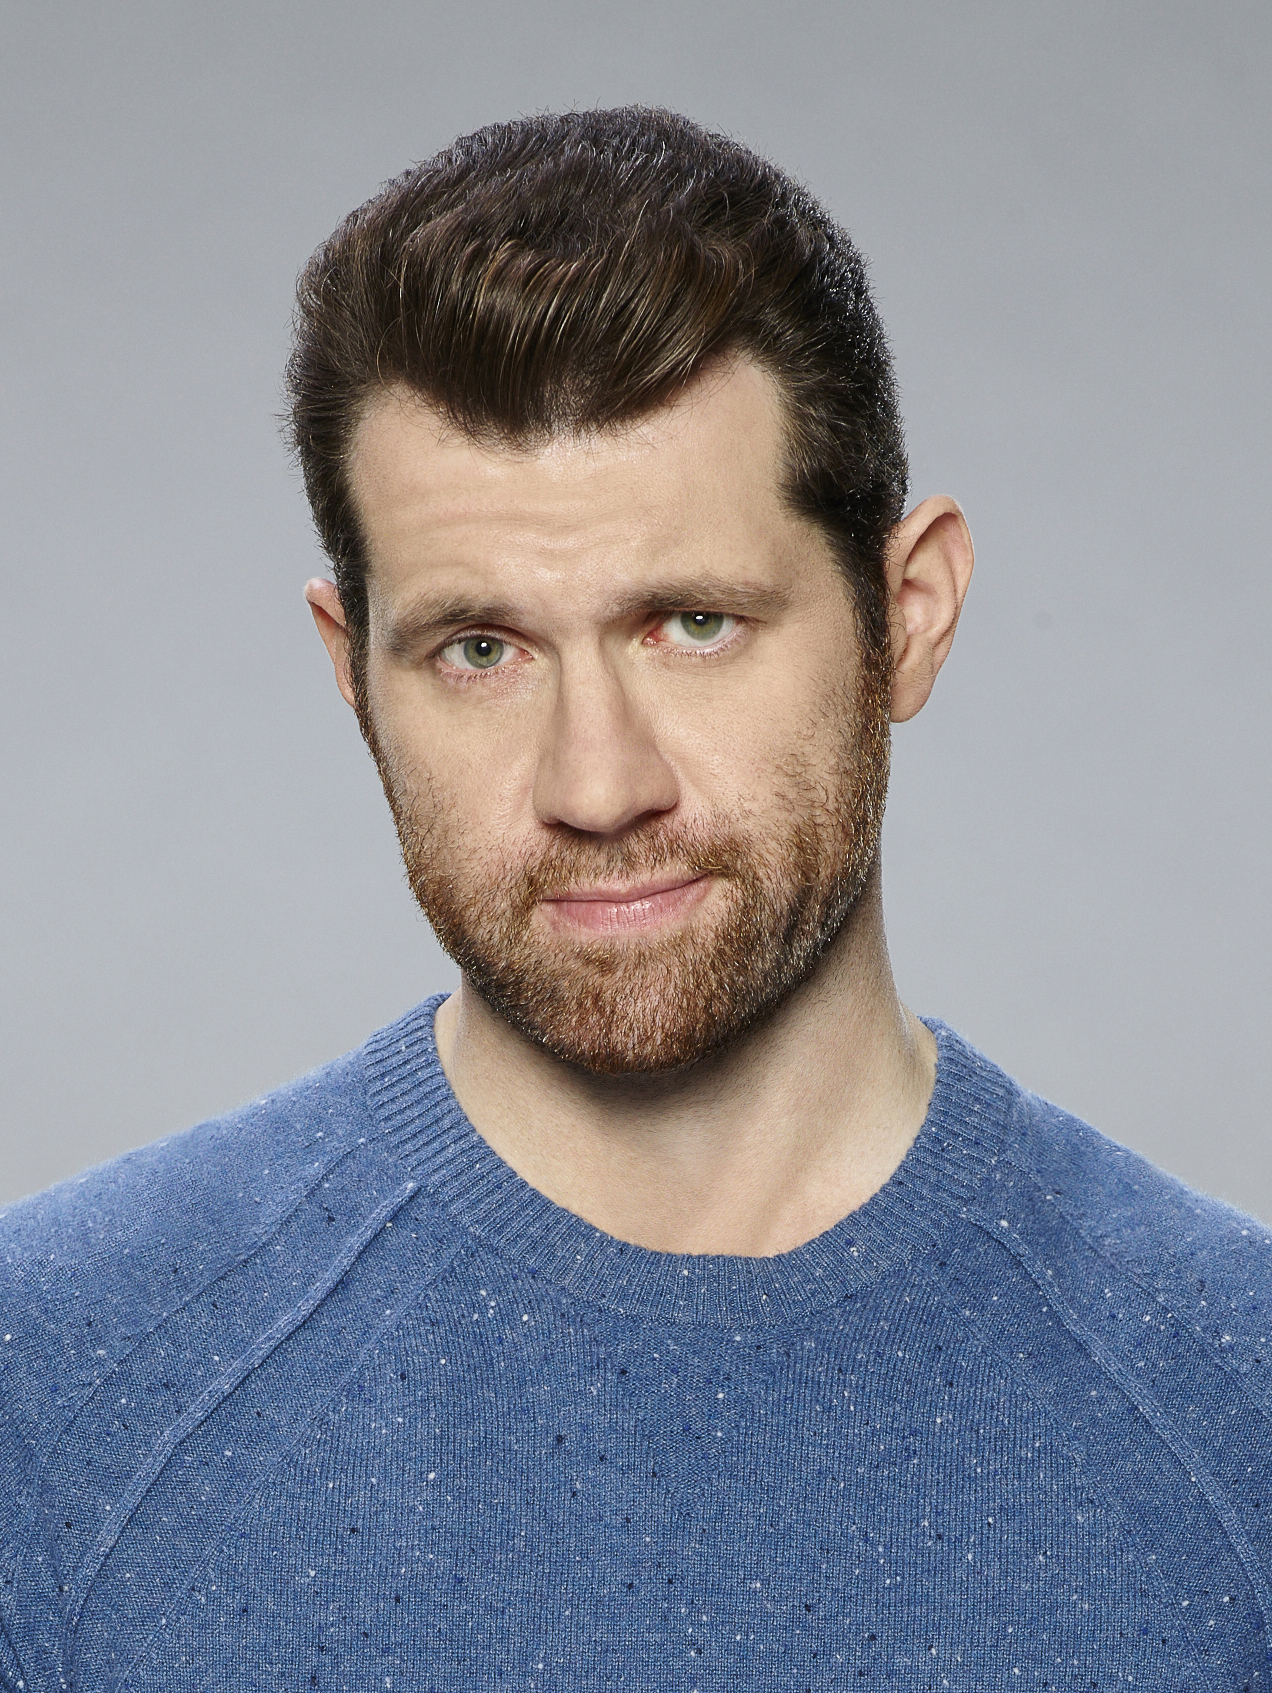 Billy Eichner wiki, age, height, boyfriend, gay, networth, relationship